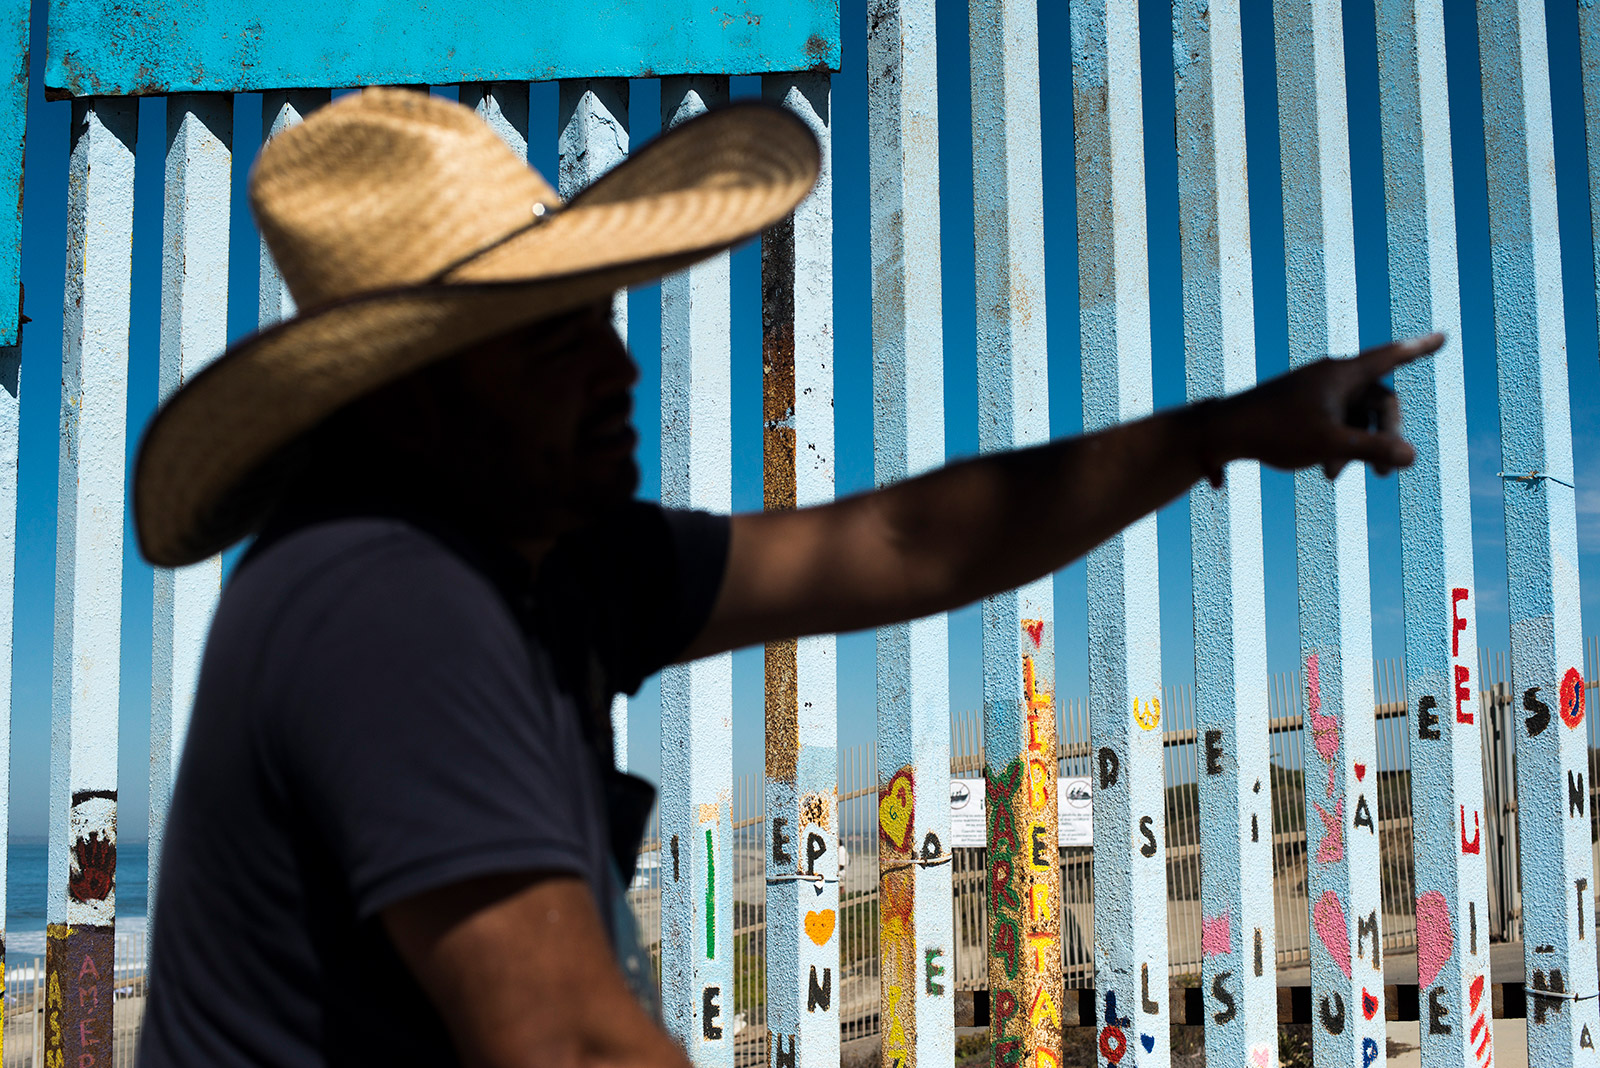 Enrique Chiu, a Tijuana-based muralist, is silhouetted against the fencing of the U.S.-Mexico border on Oct. 7, 2017. Chiu has worked for nearly a year painting murals along the fencing that separates San Diego and Tijuana. <em>Brandon Quester/inewsource</em>